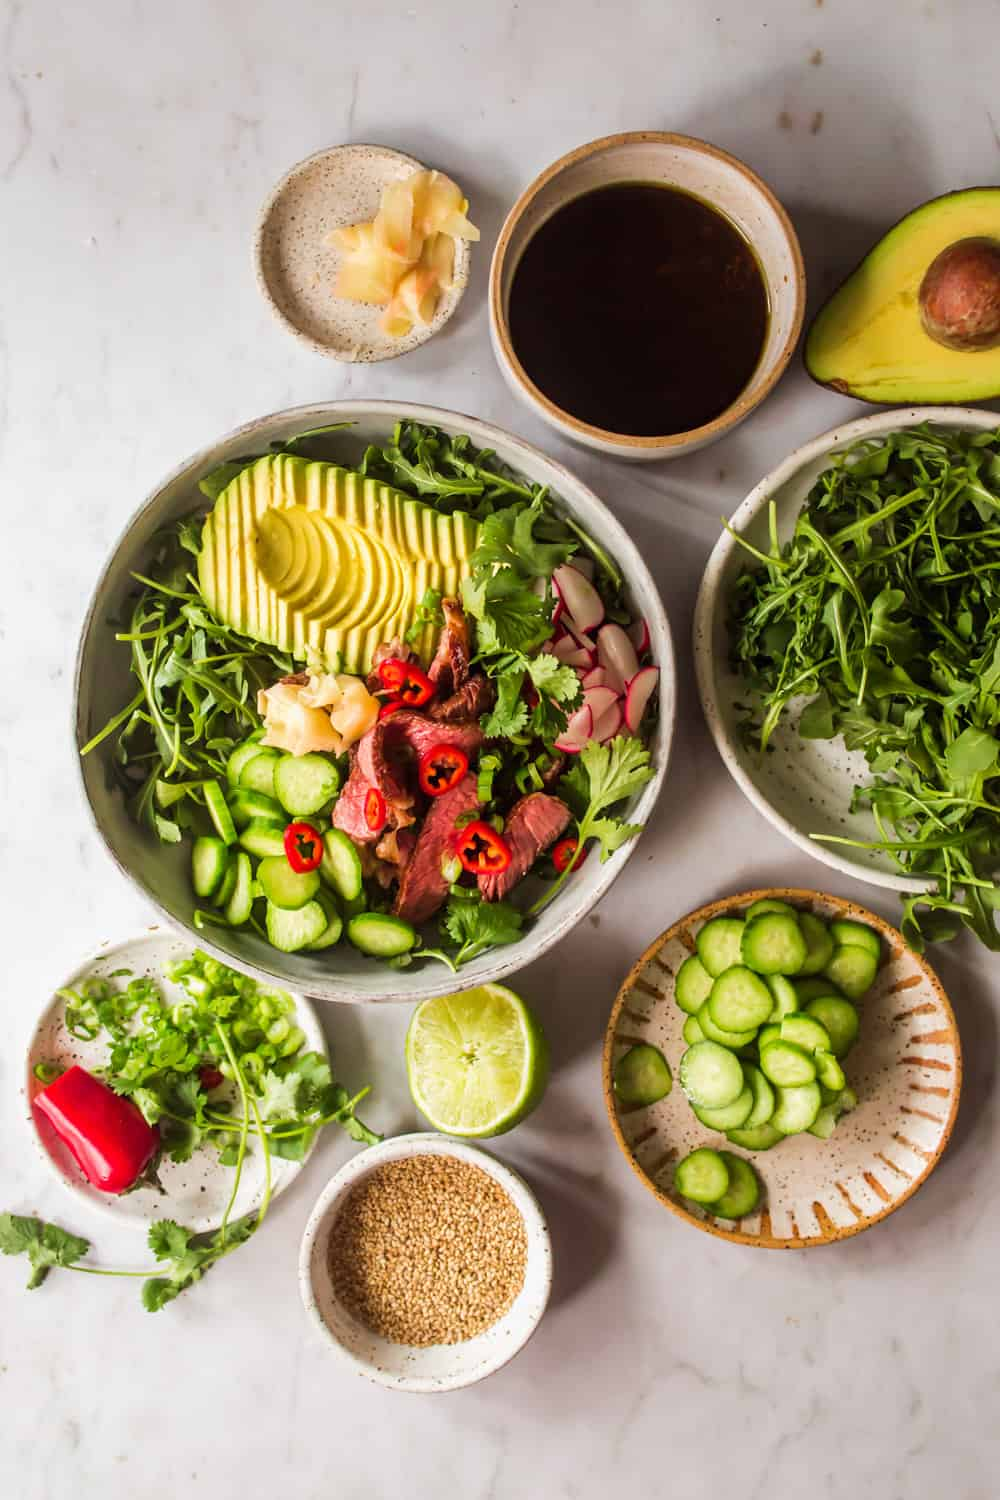 Individual small bowls filled with vegetables and ingredients for Asian salad. Large bowl with salad in the middle.